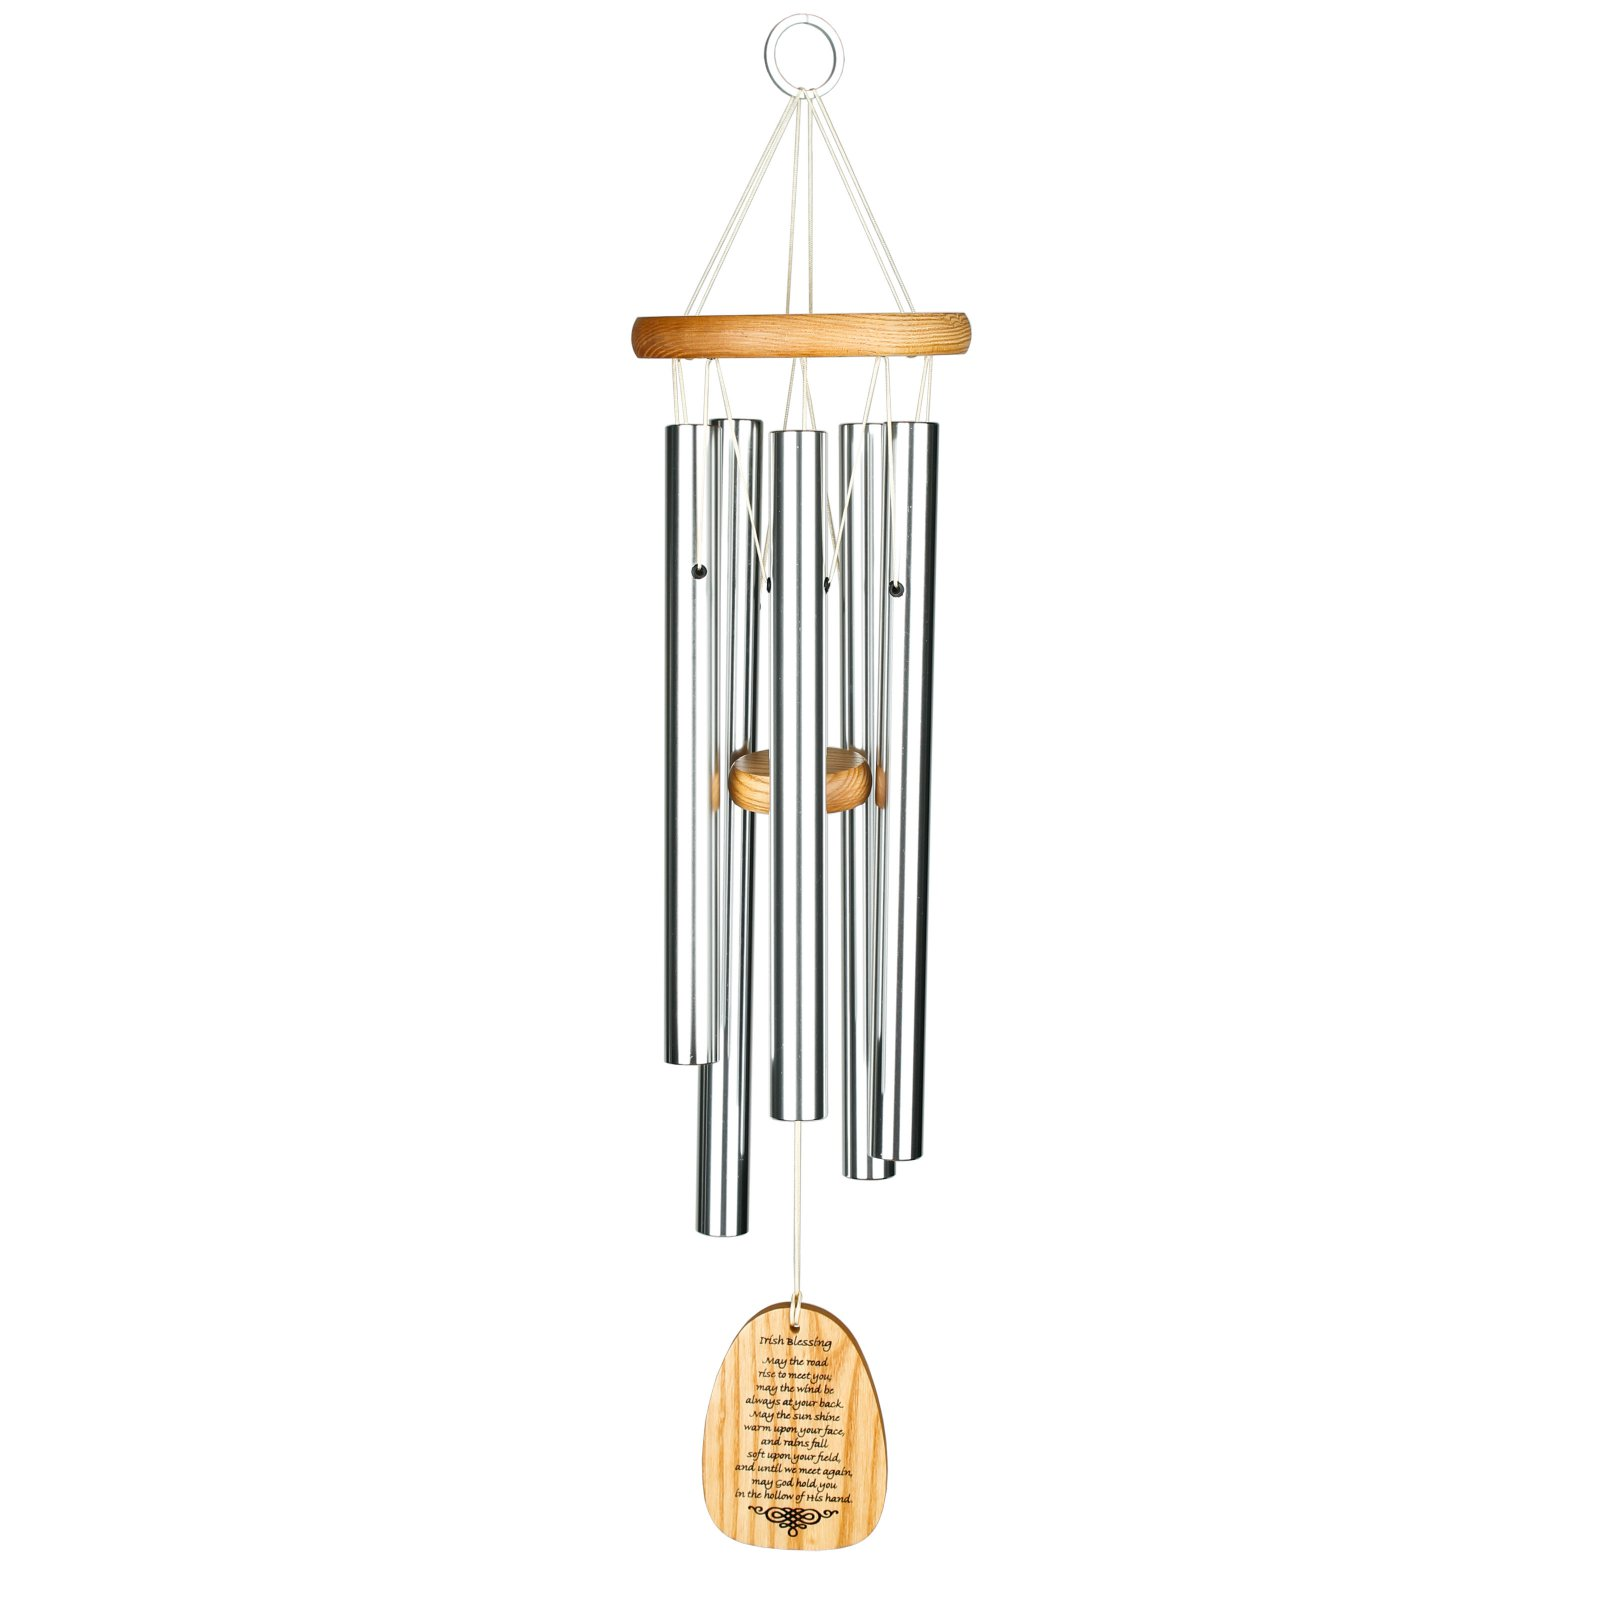 Woodstock 22 in. Reflections Chime with Irish Blessing